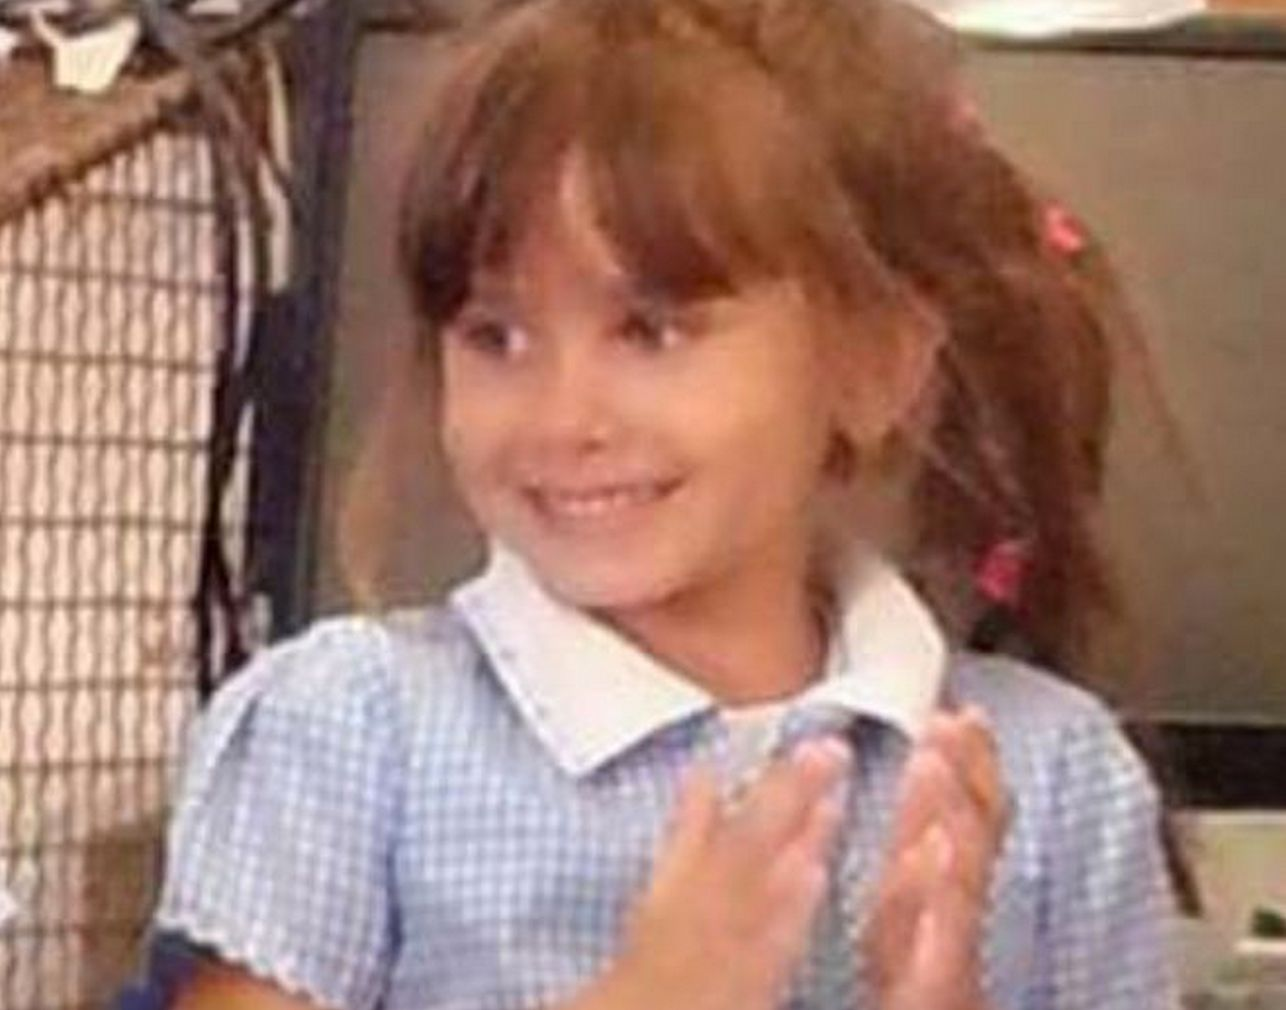 Seven-year-old Katie Rough was killed on Monday and a 15-year-old girl has been charged with her